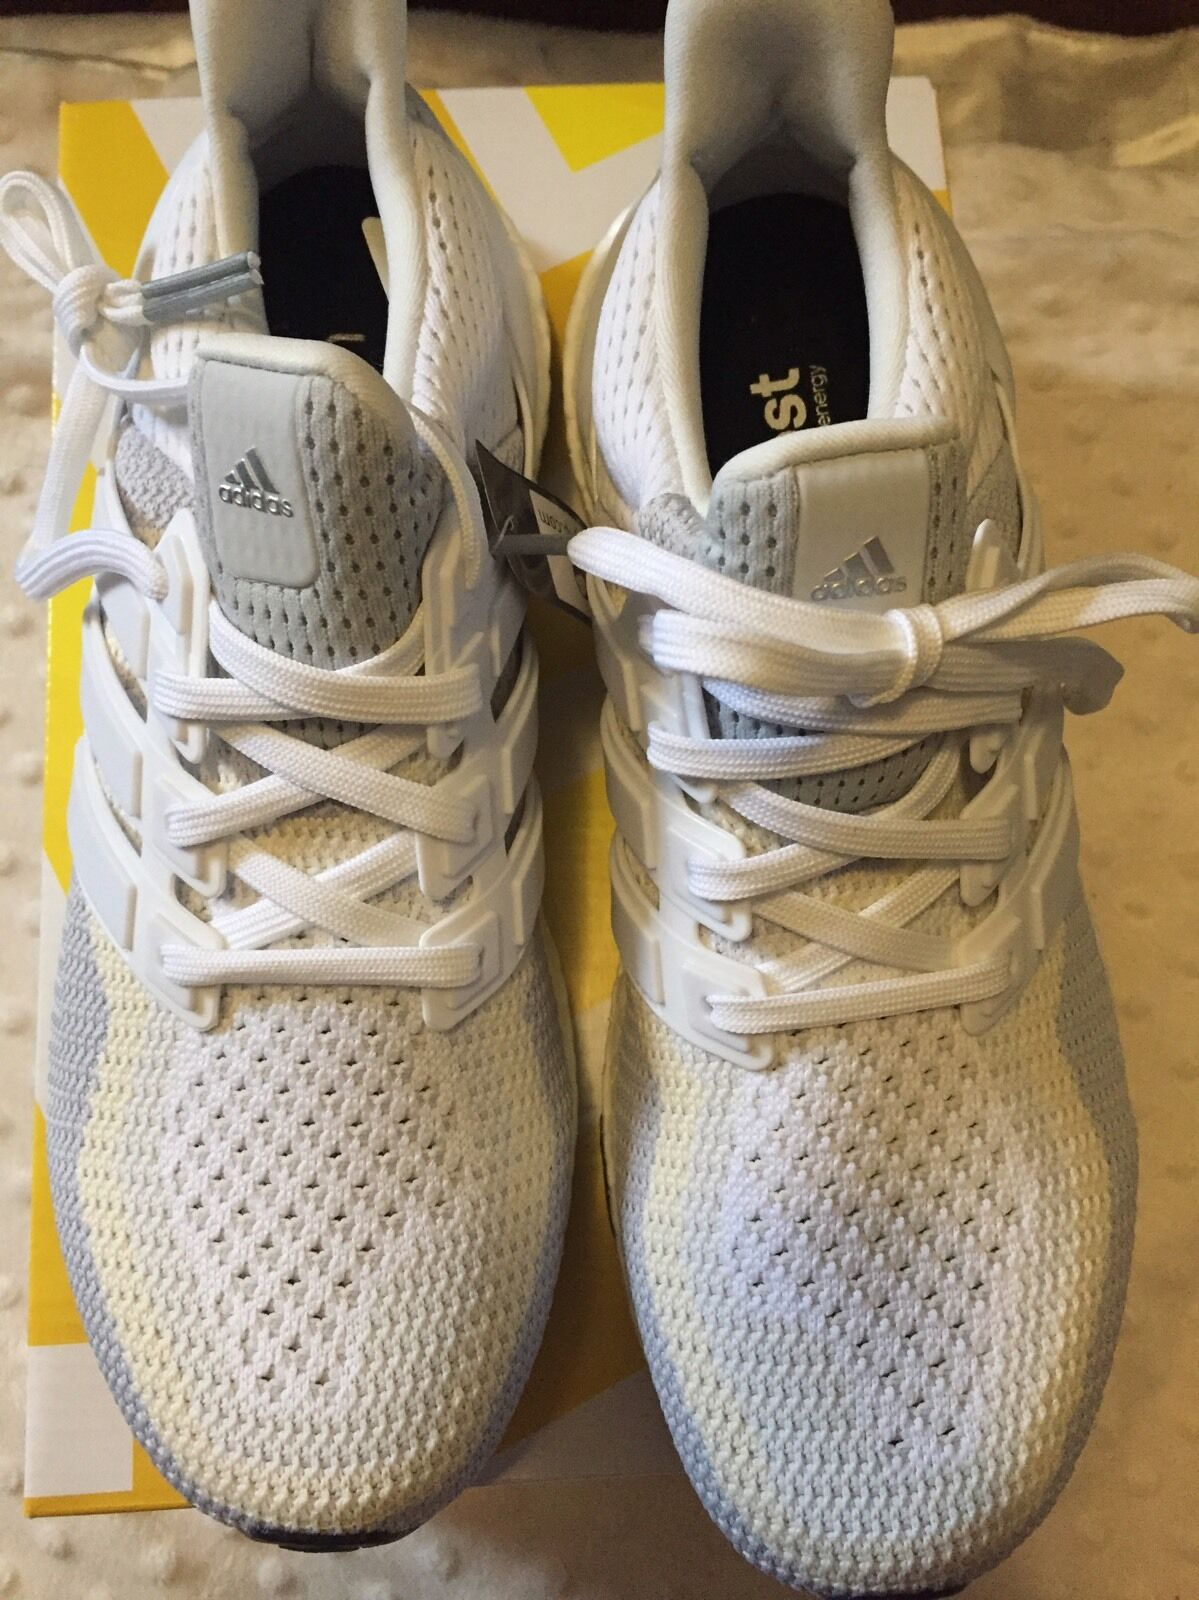 Adidas Women's Performance Boost White 8 Sneakers Size 8 White 3681d8